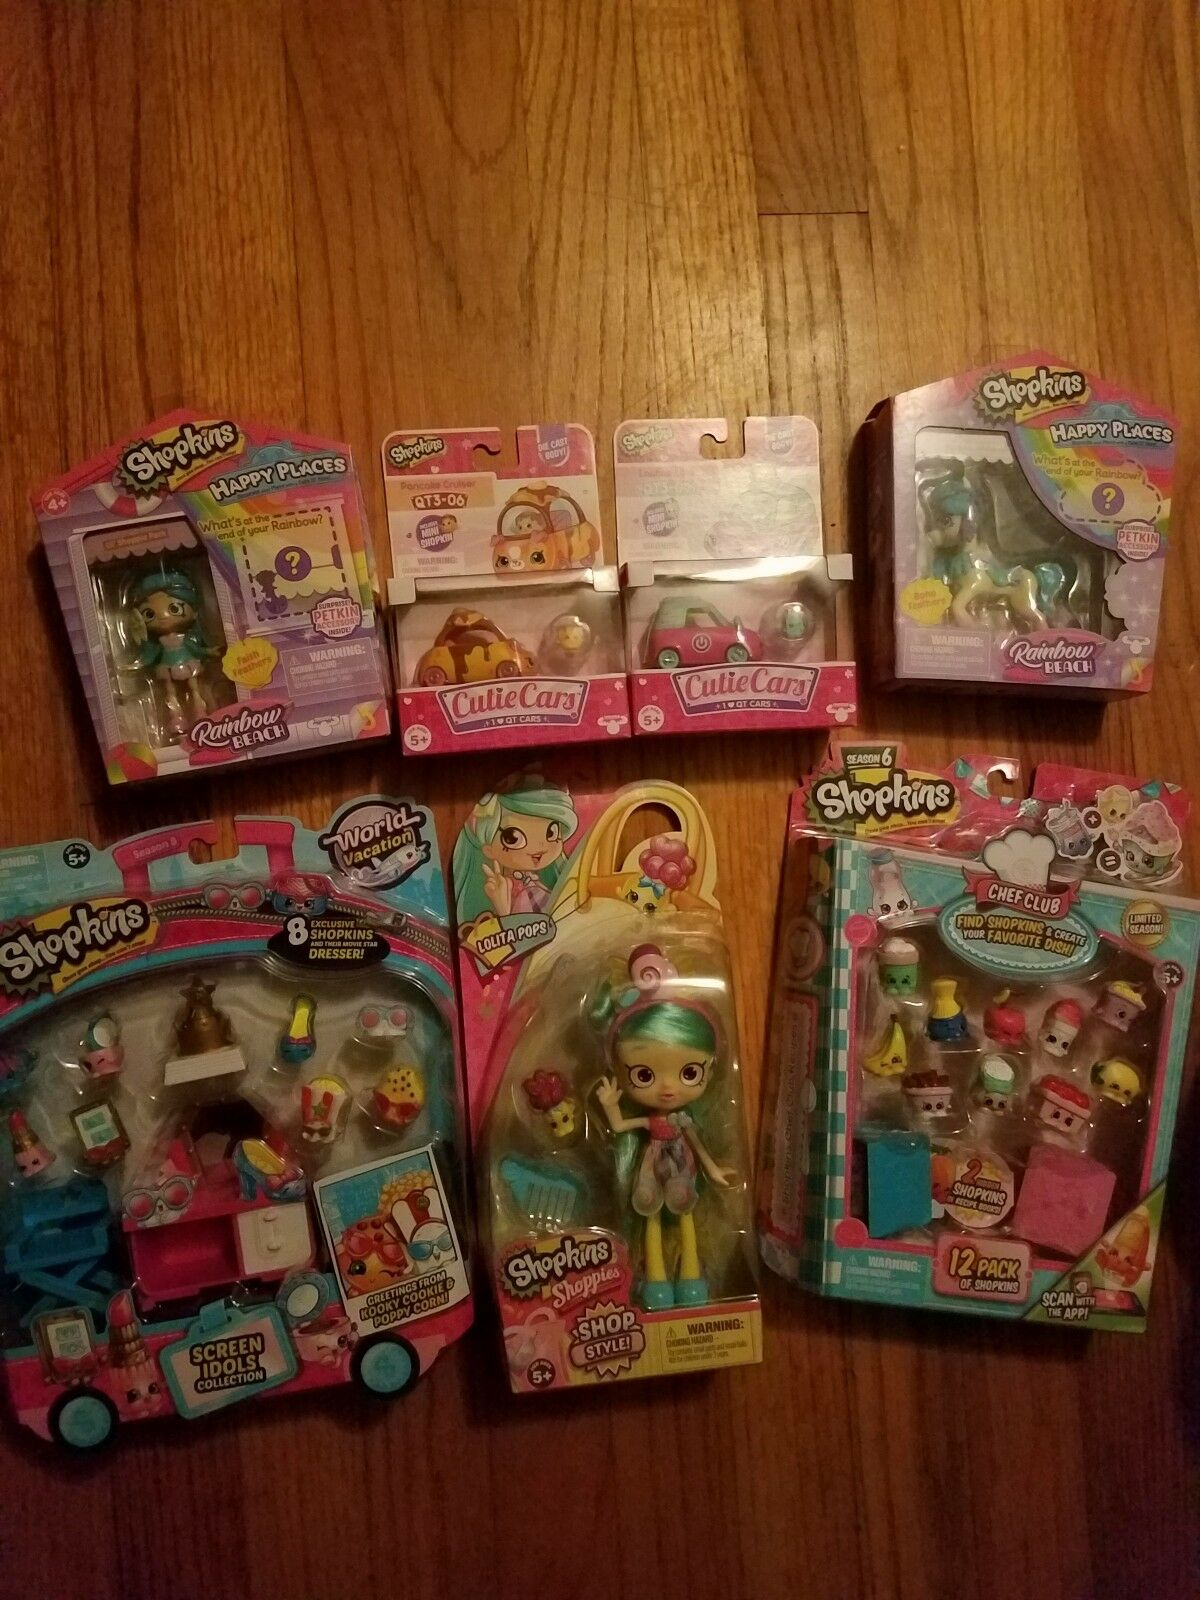 New Lot Shopkins Happy Places Rainbow Unicorn Cutie Cars World Vacation Shoppies